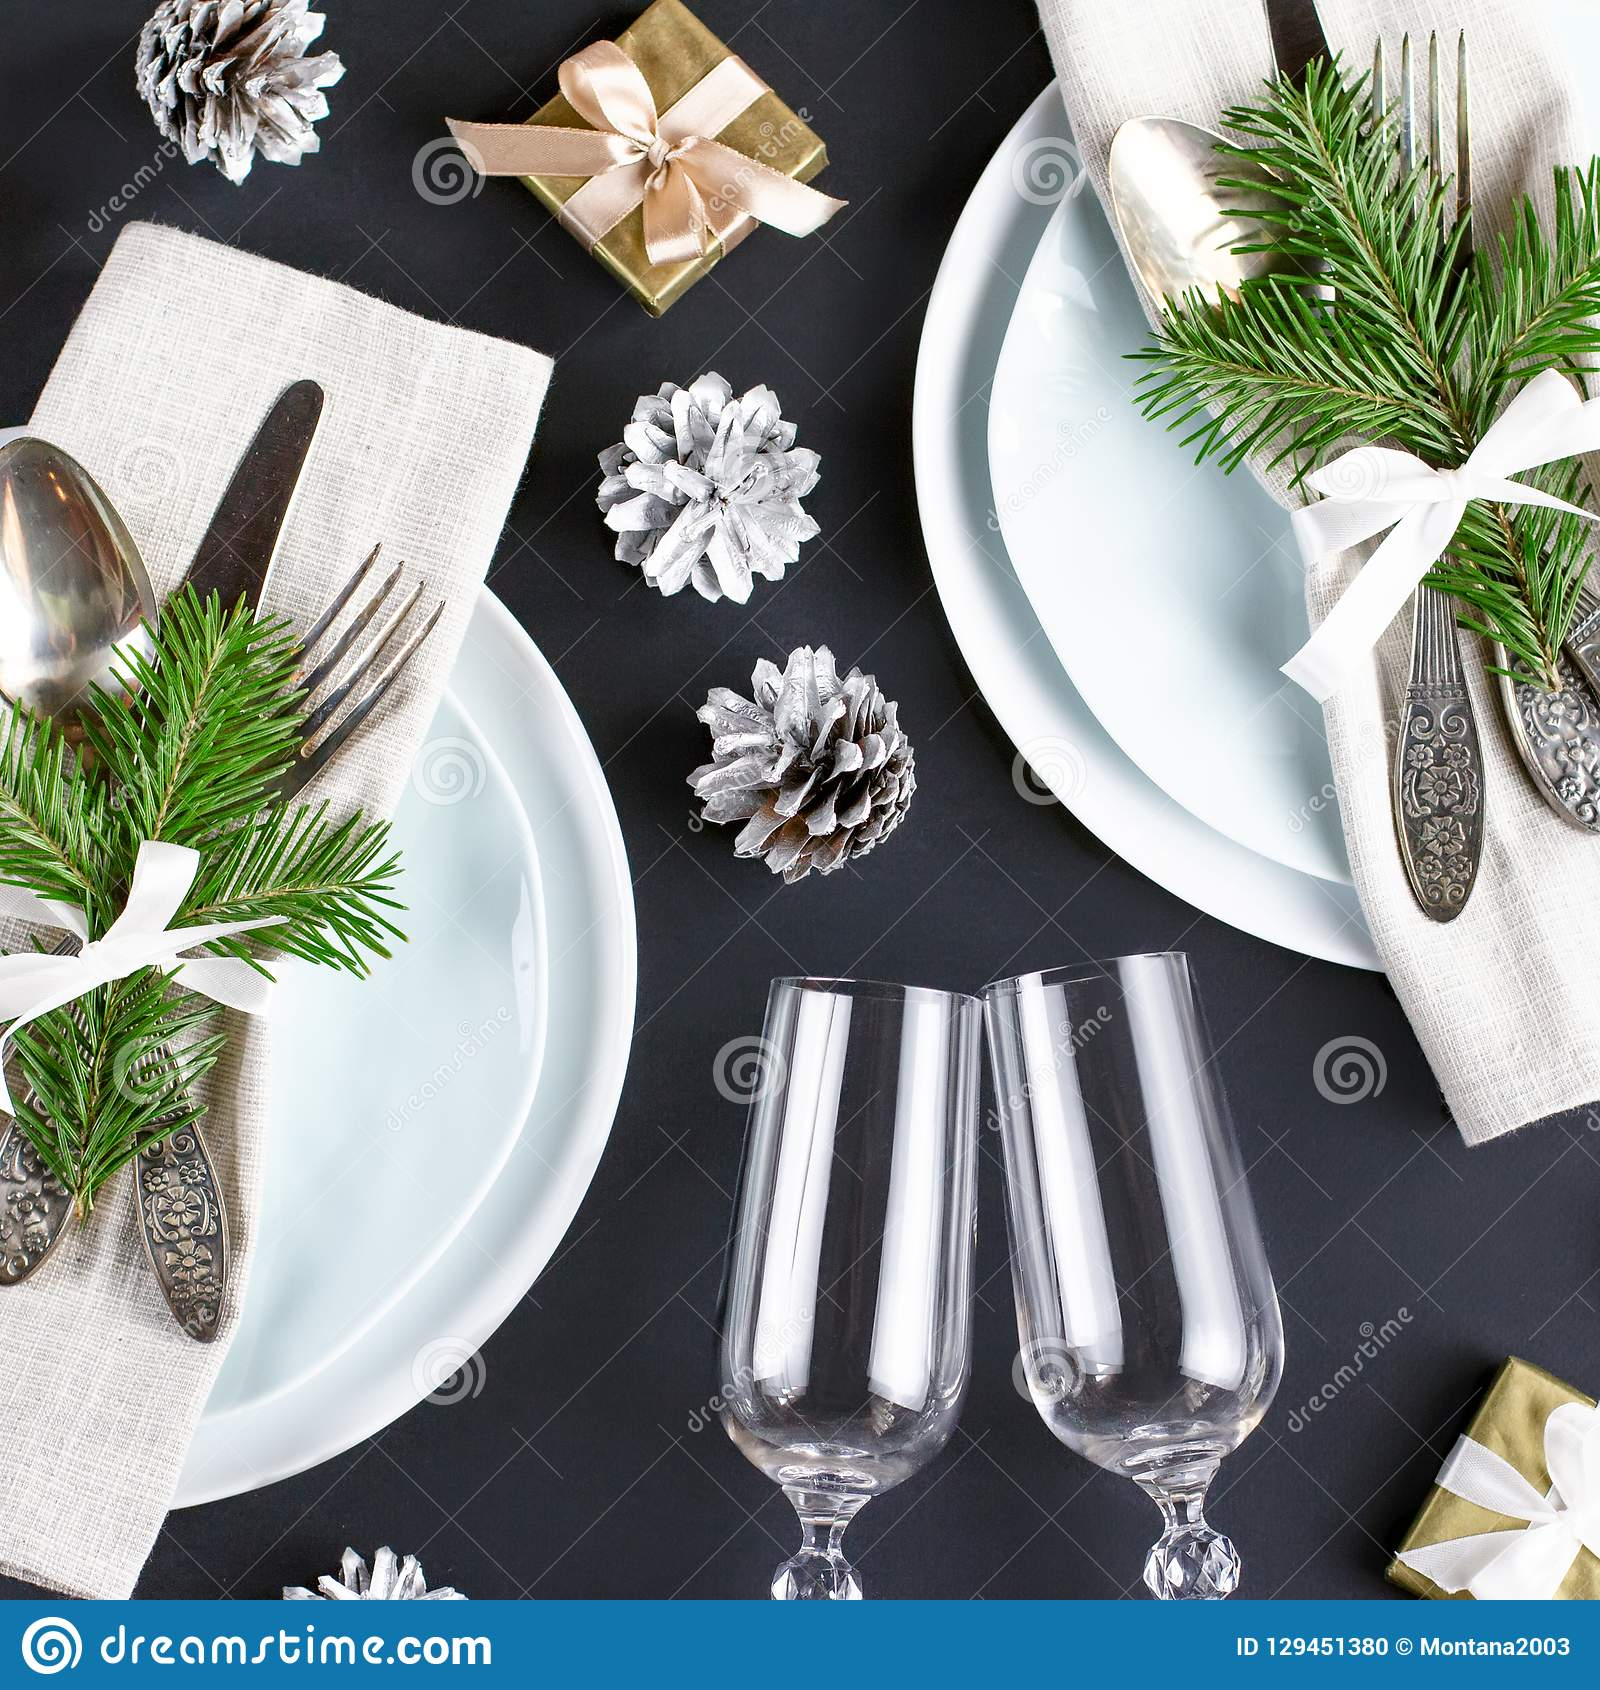 Christmas Table Setting With Plates Silverware Gift Box And